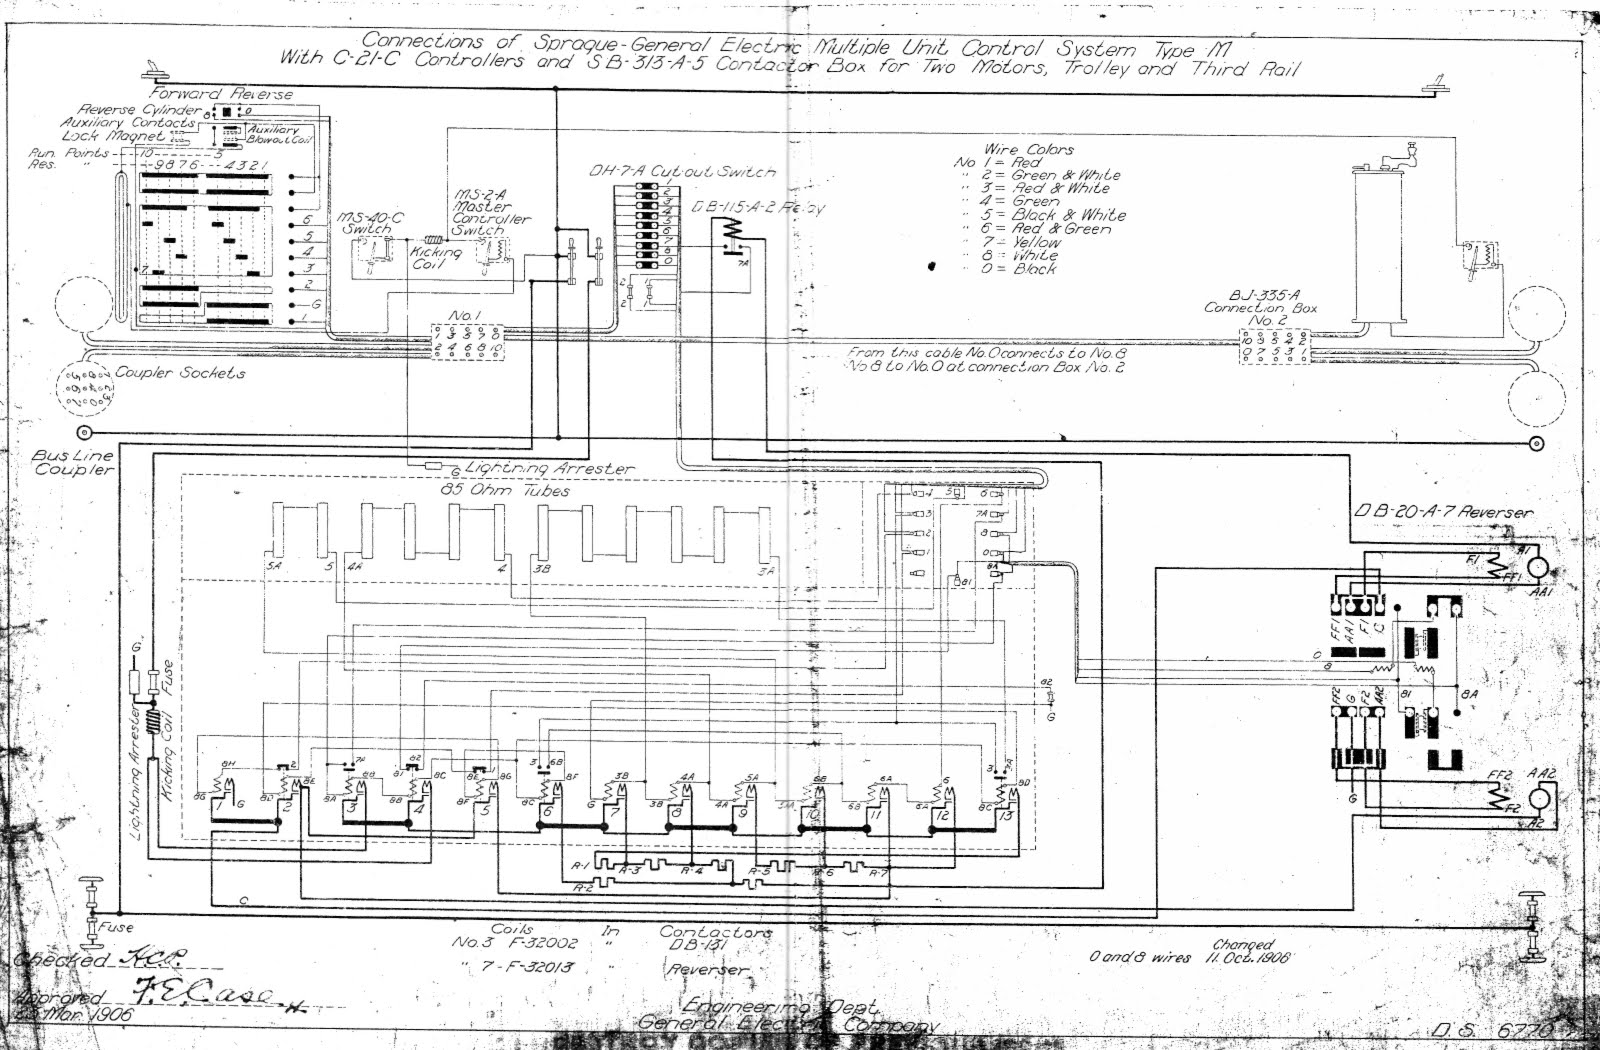 1956 Ford Ignition Switch Wiring Diagram Engine Wiring Diagram Image